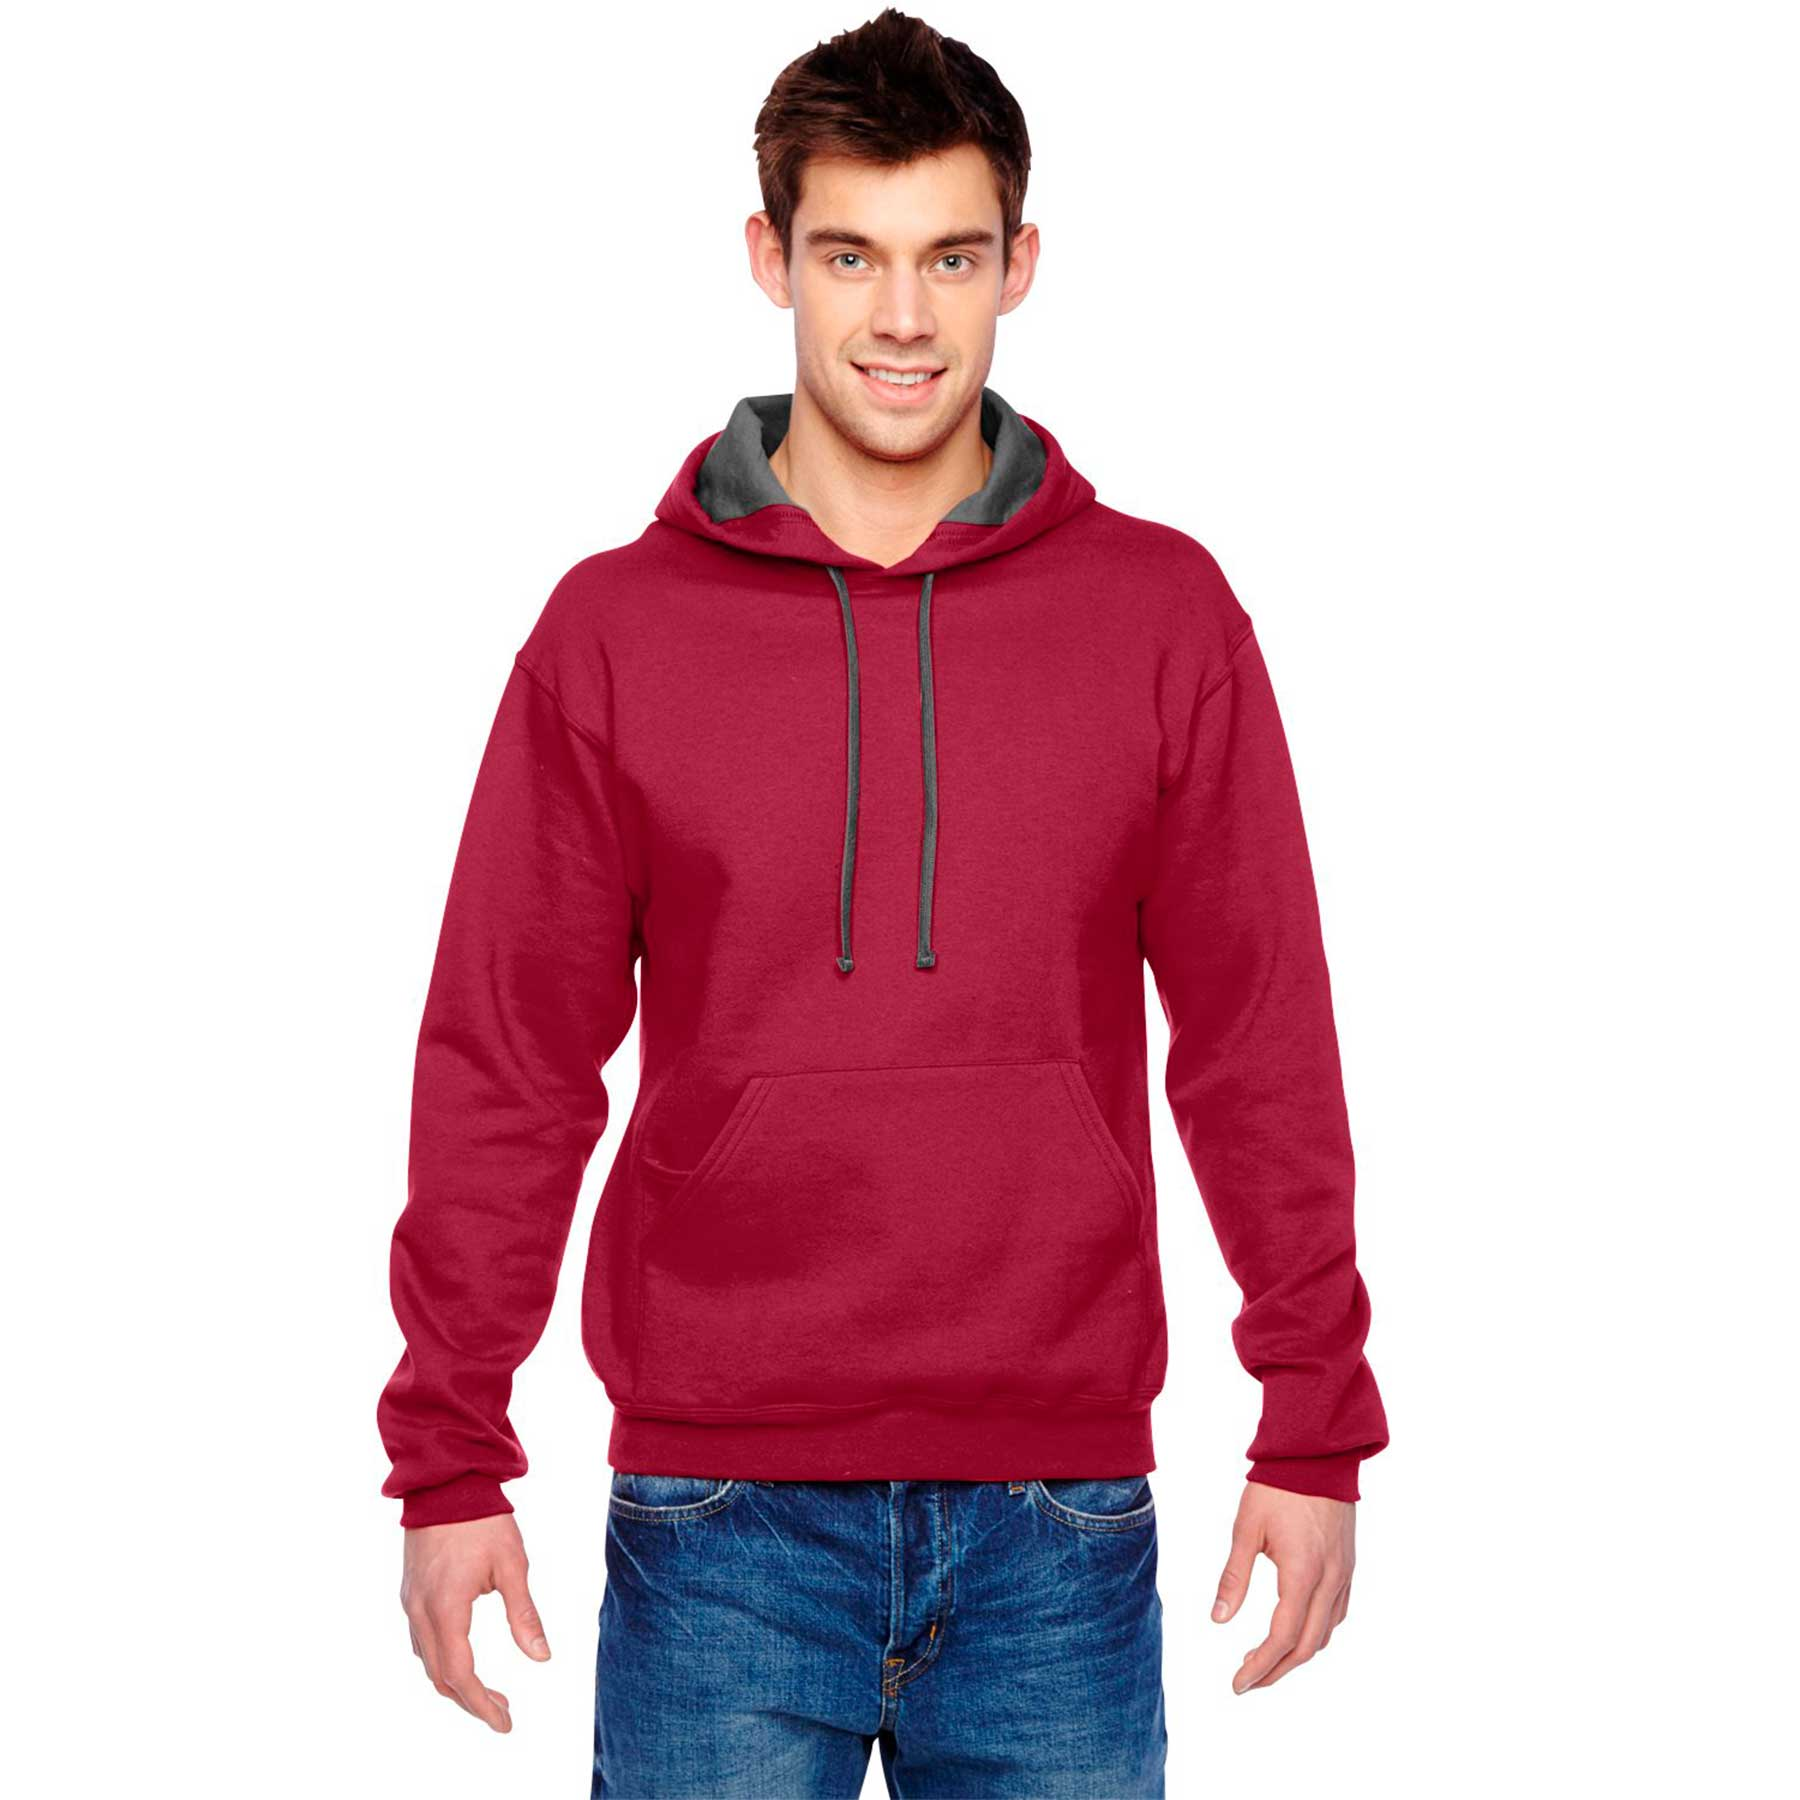 Apparel Catalog Adult Hoodies